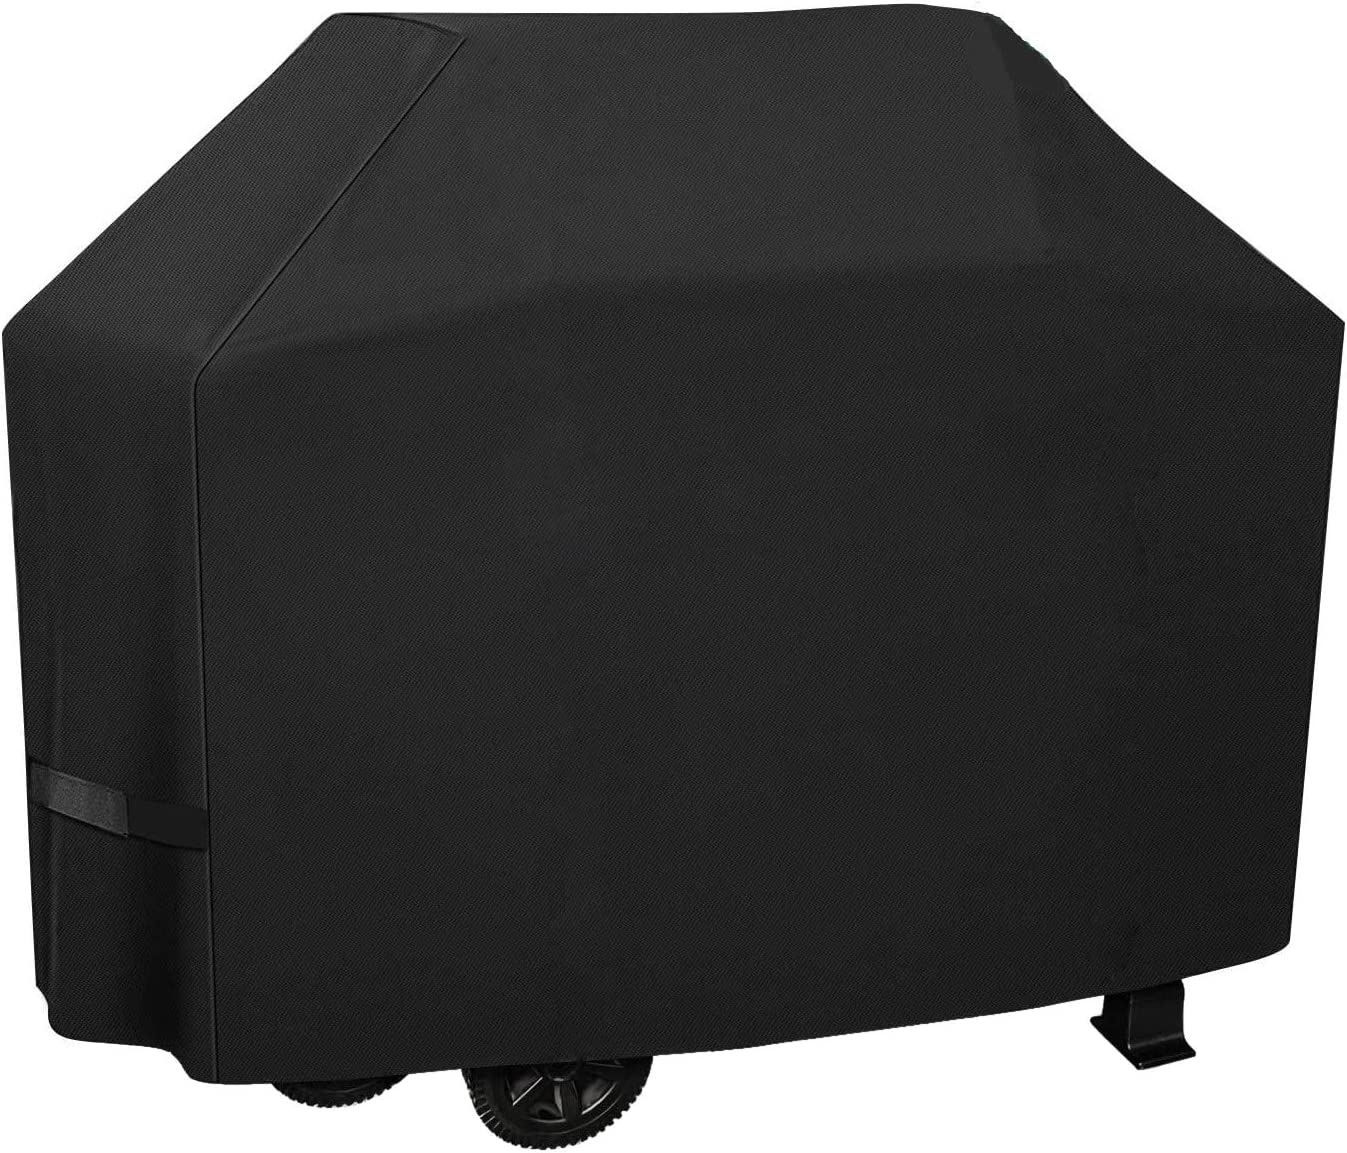 Estefanlo Grill Cover,58 inch BBQ Grill Cover,Waterproof Heavy Duty Rip-Proof Fade Resistant BBQ Cover Oxford Outdoor Gas Grill Cover for Garden Barbecues Weber Brinkmann Char Broil,Black